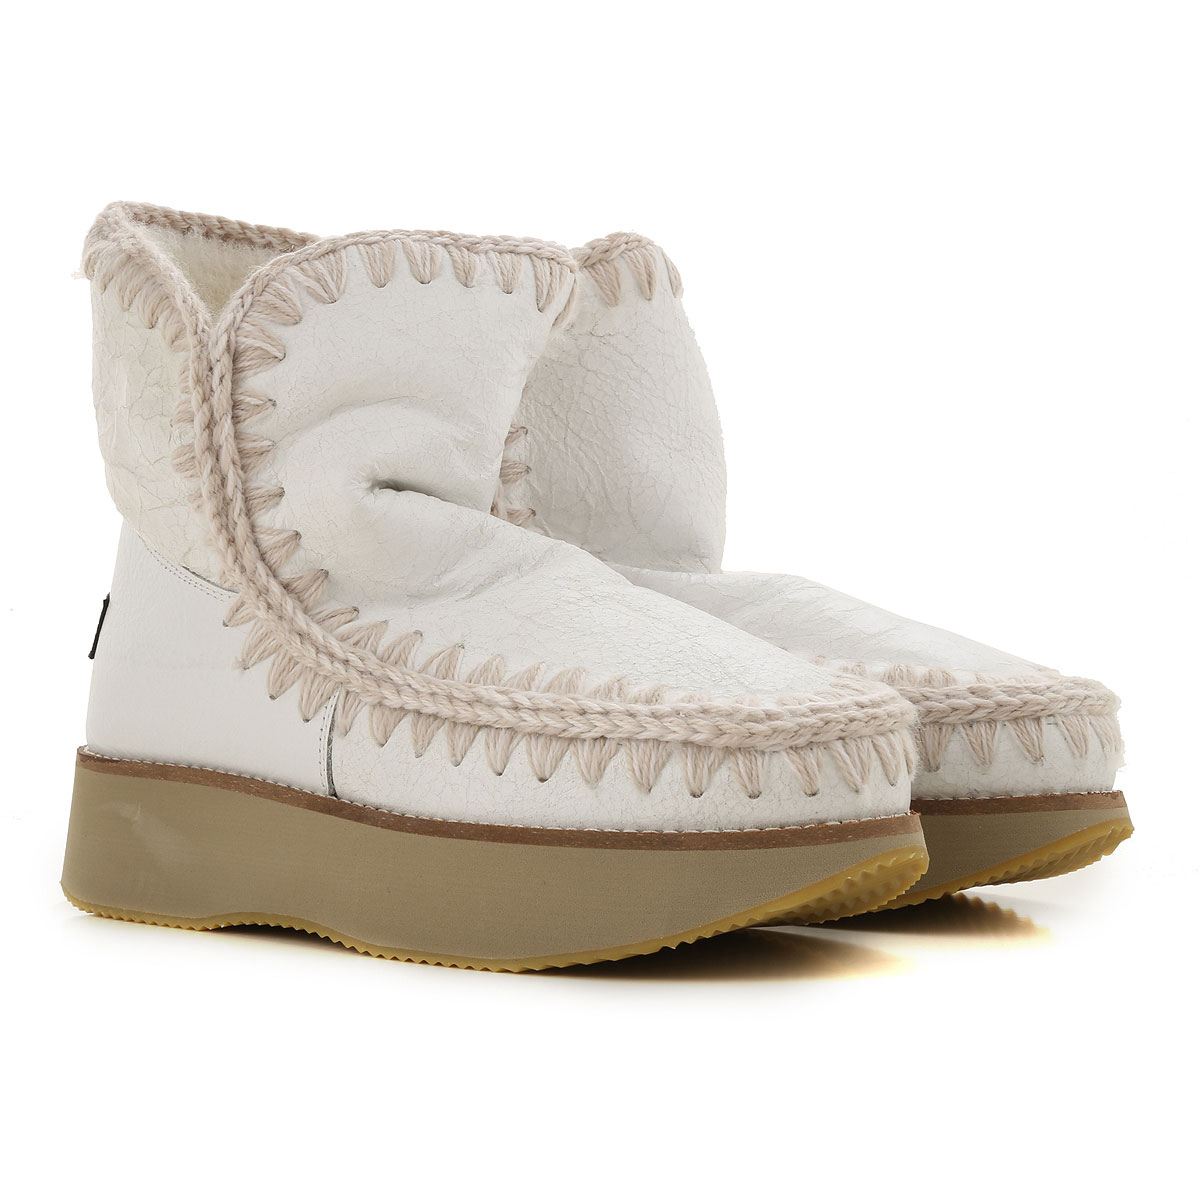 Image of Mou Boots for Women, Booties, White, Leather, 2017, EUR 37 - UK 4 - USA 6.5 EUR 38 - UK 5 - USA 7.5 EUR 39 - UK 6 - USA 8.5 EUR 40 - UK 7 - USA 9.5